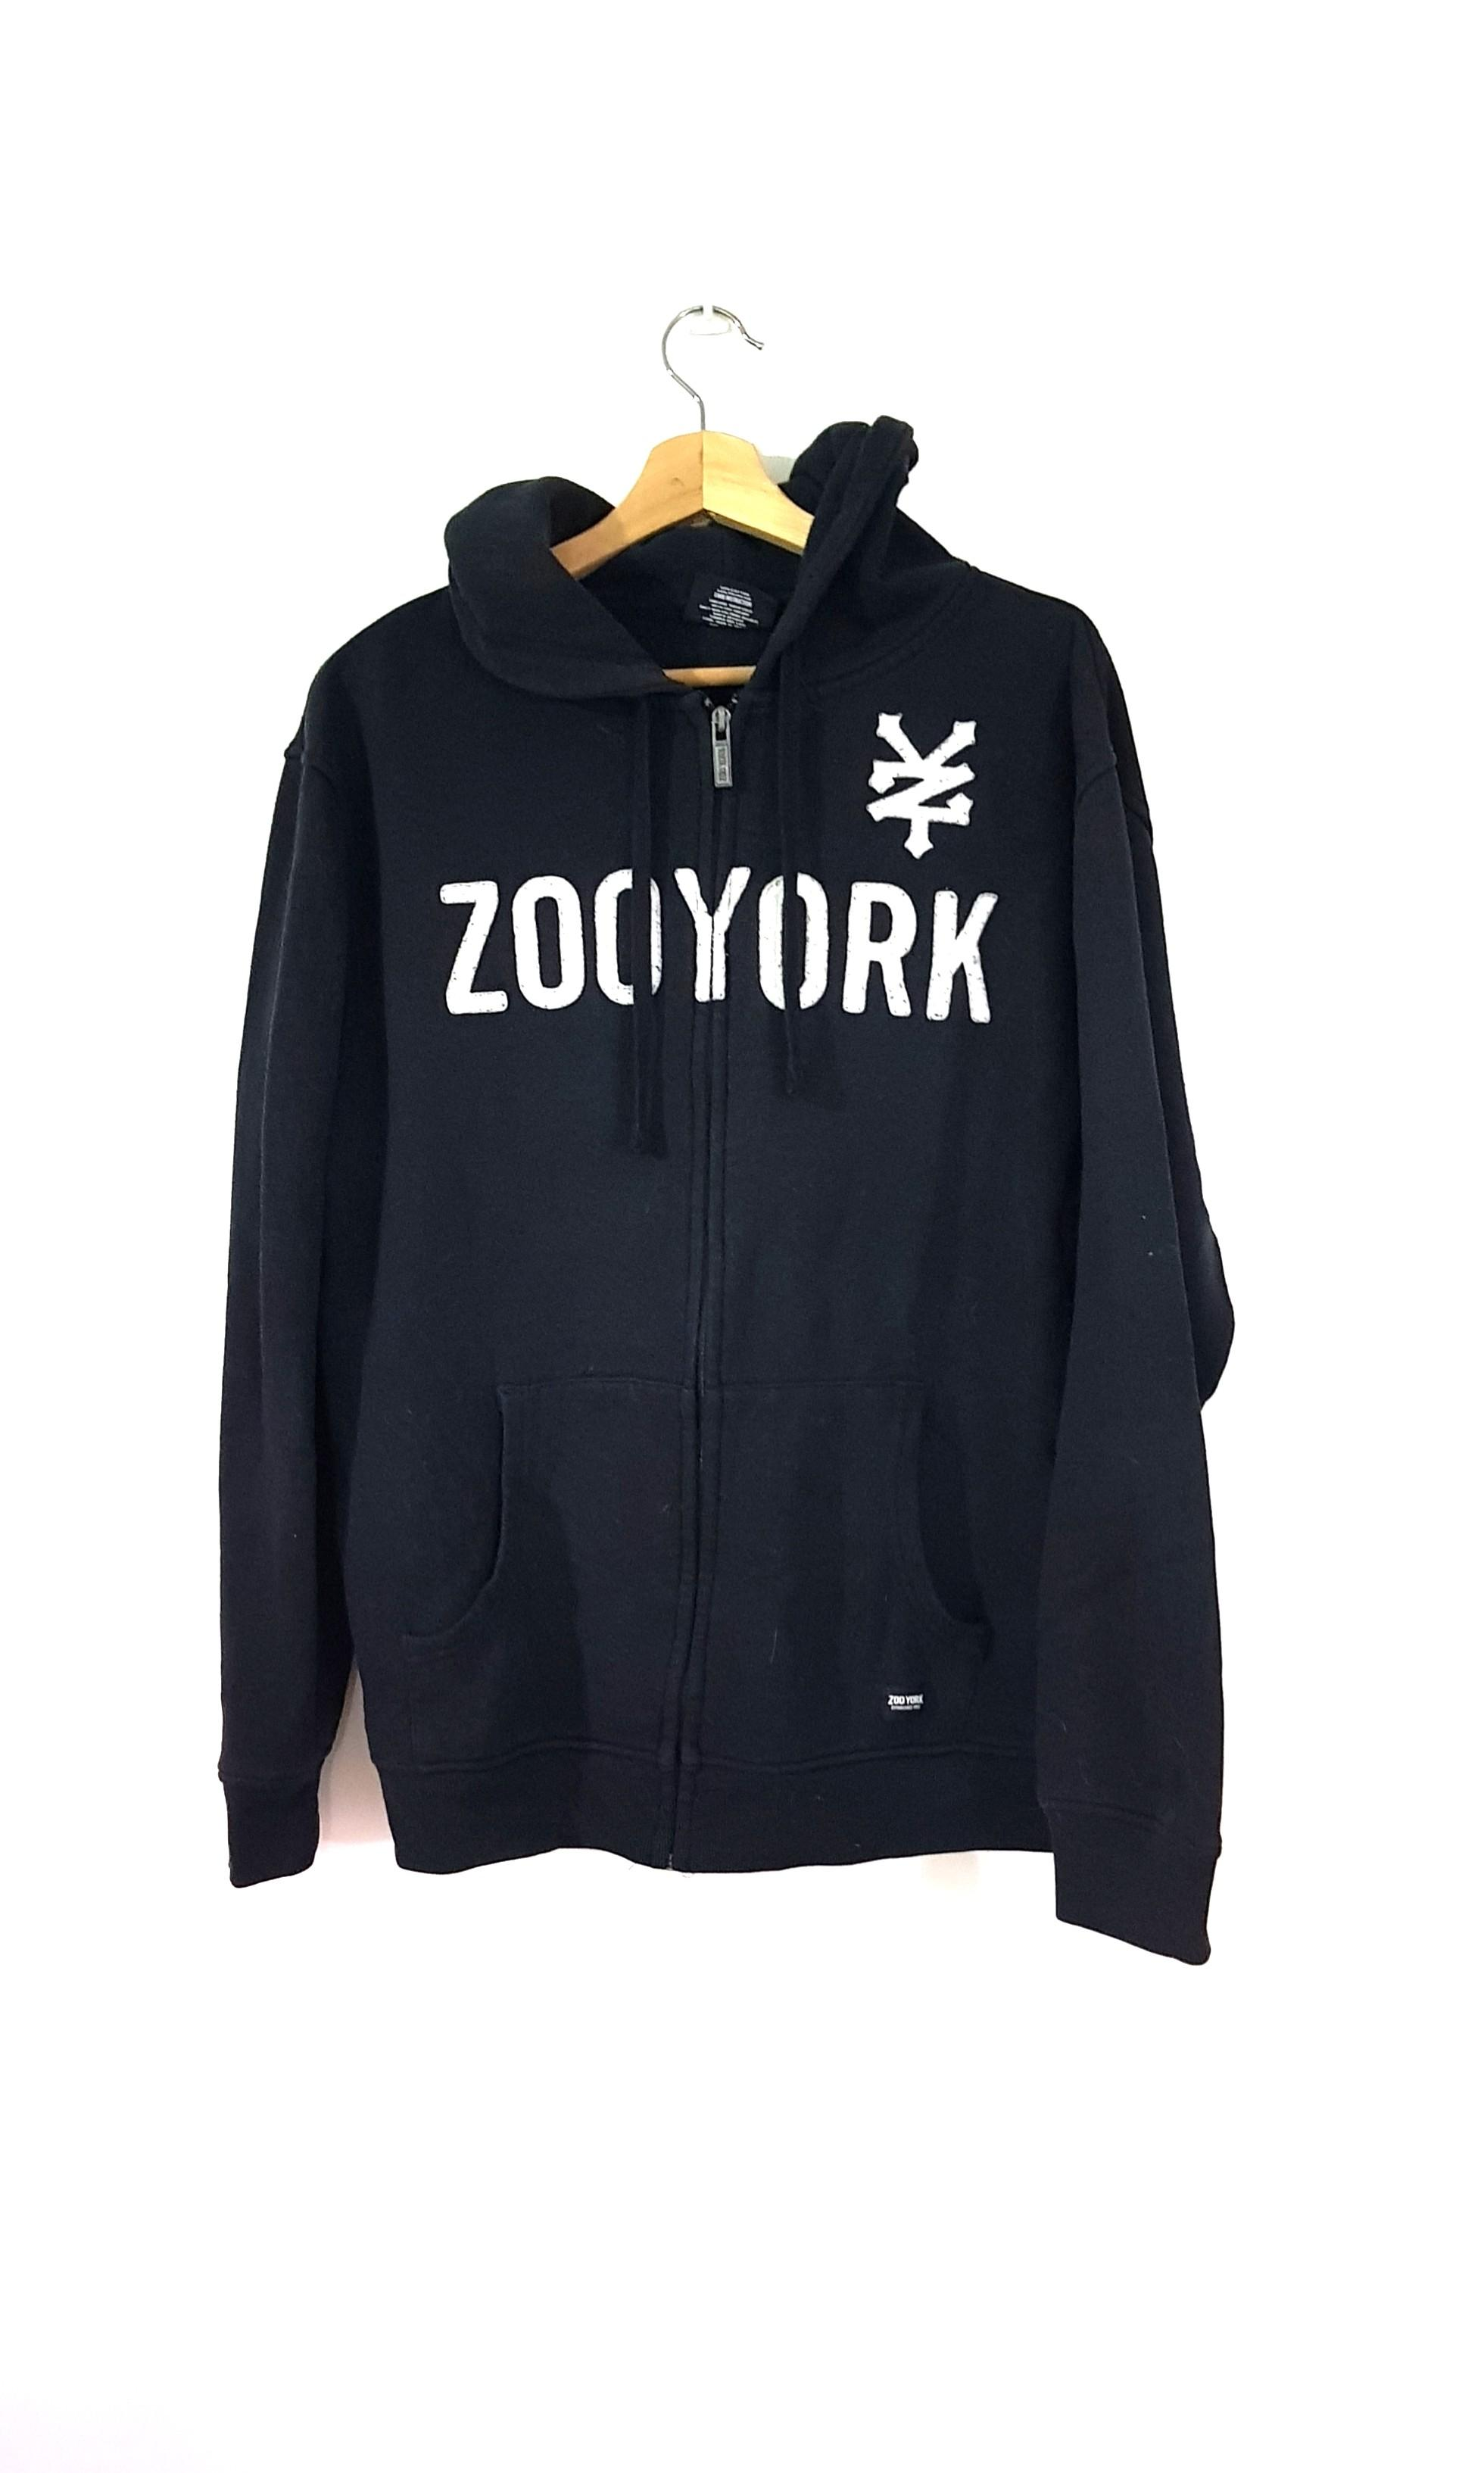 964c070dd Vintage Zoo York Jacket, Men's Fashion, Clothes, Outerwear on Carousell